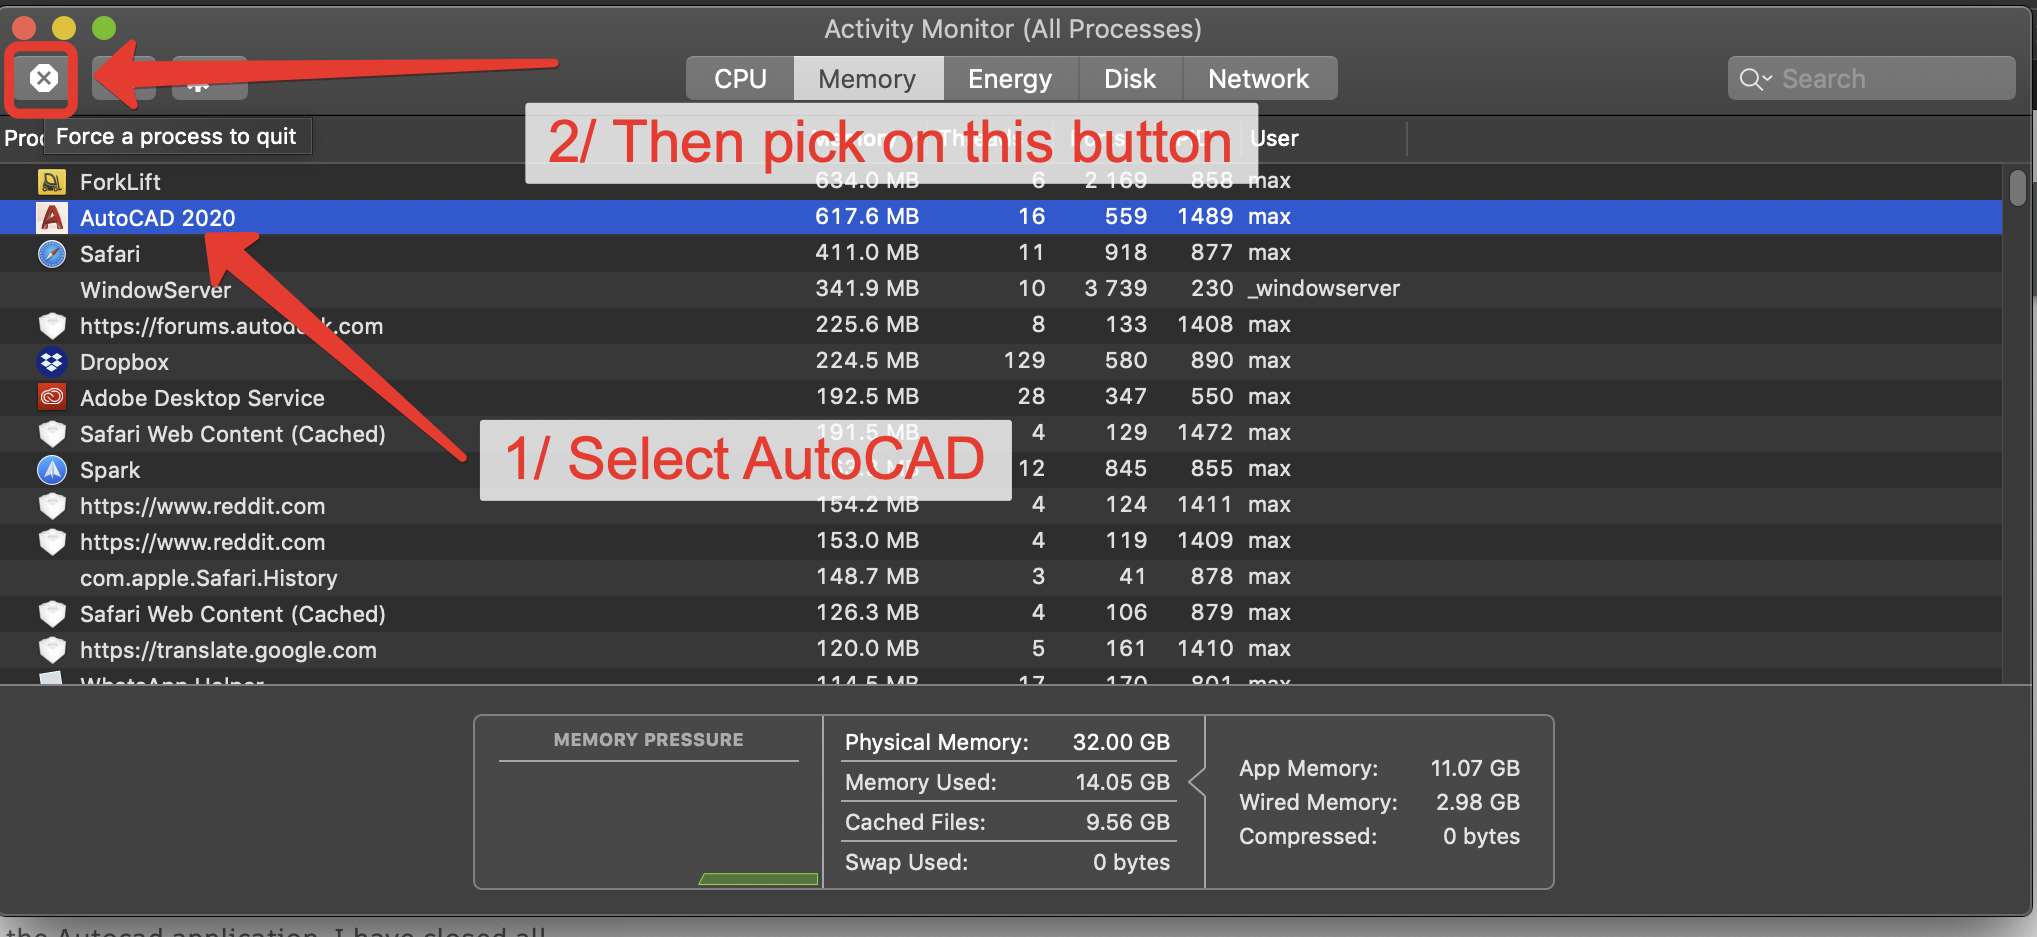 Coloured Spinning Wheel - Autodesk Community- AutoCAD for Mac